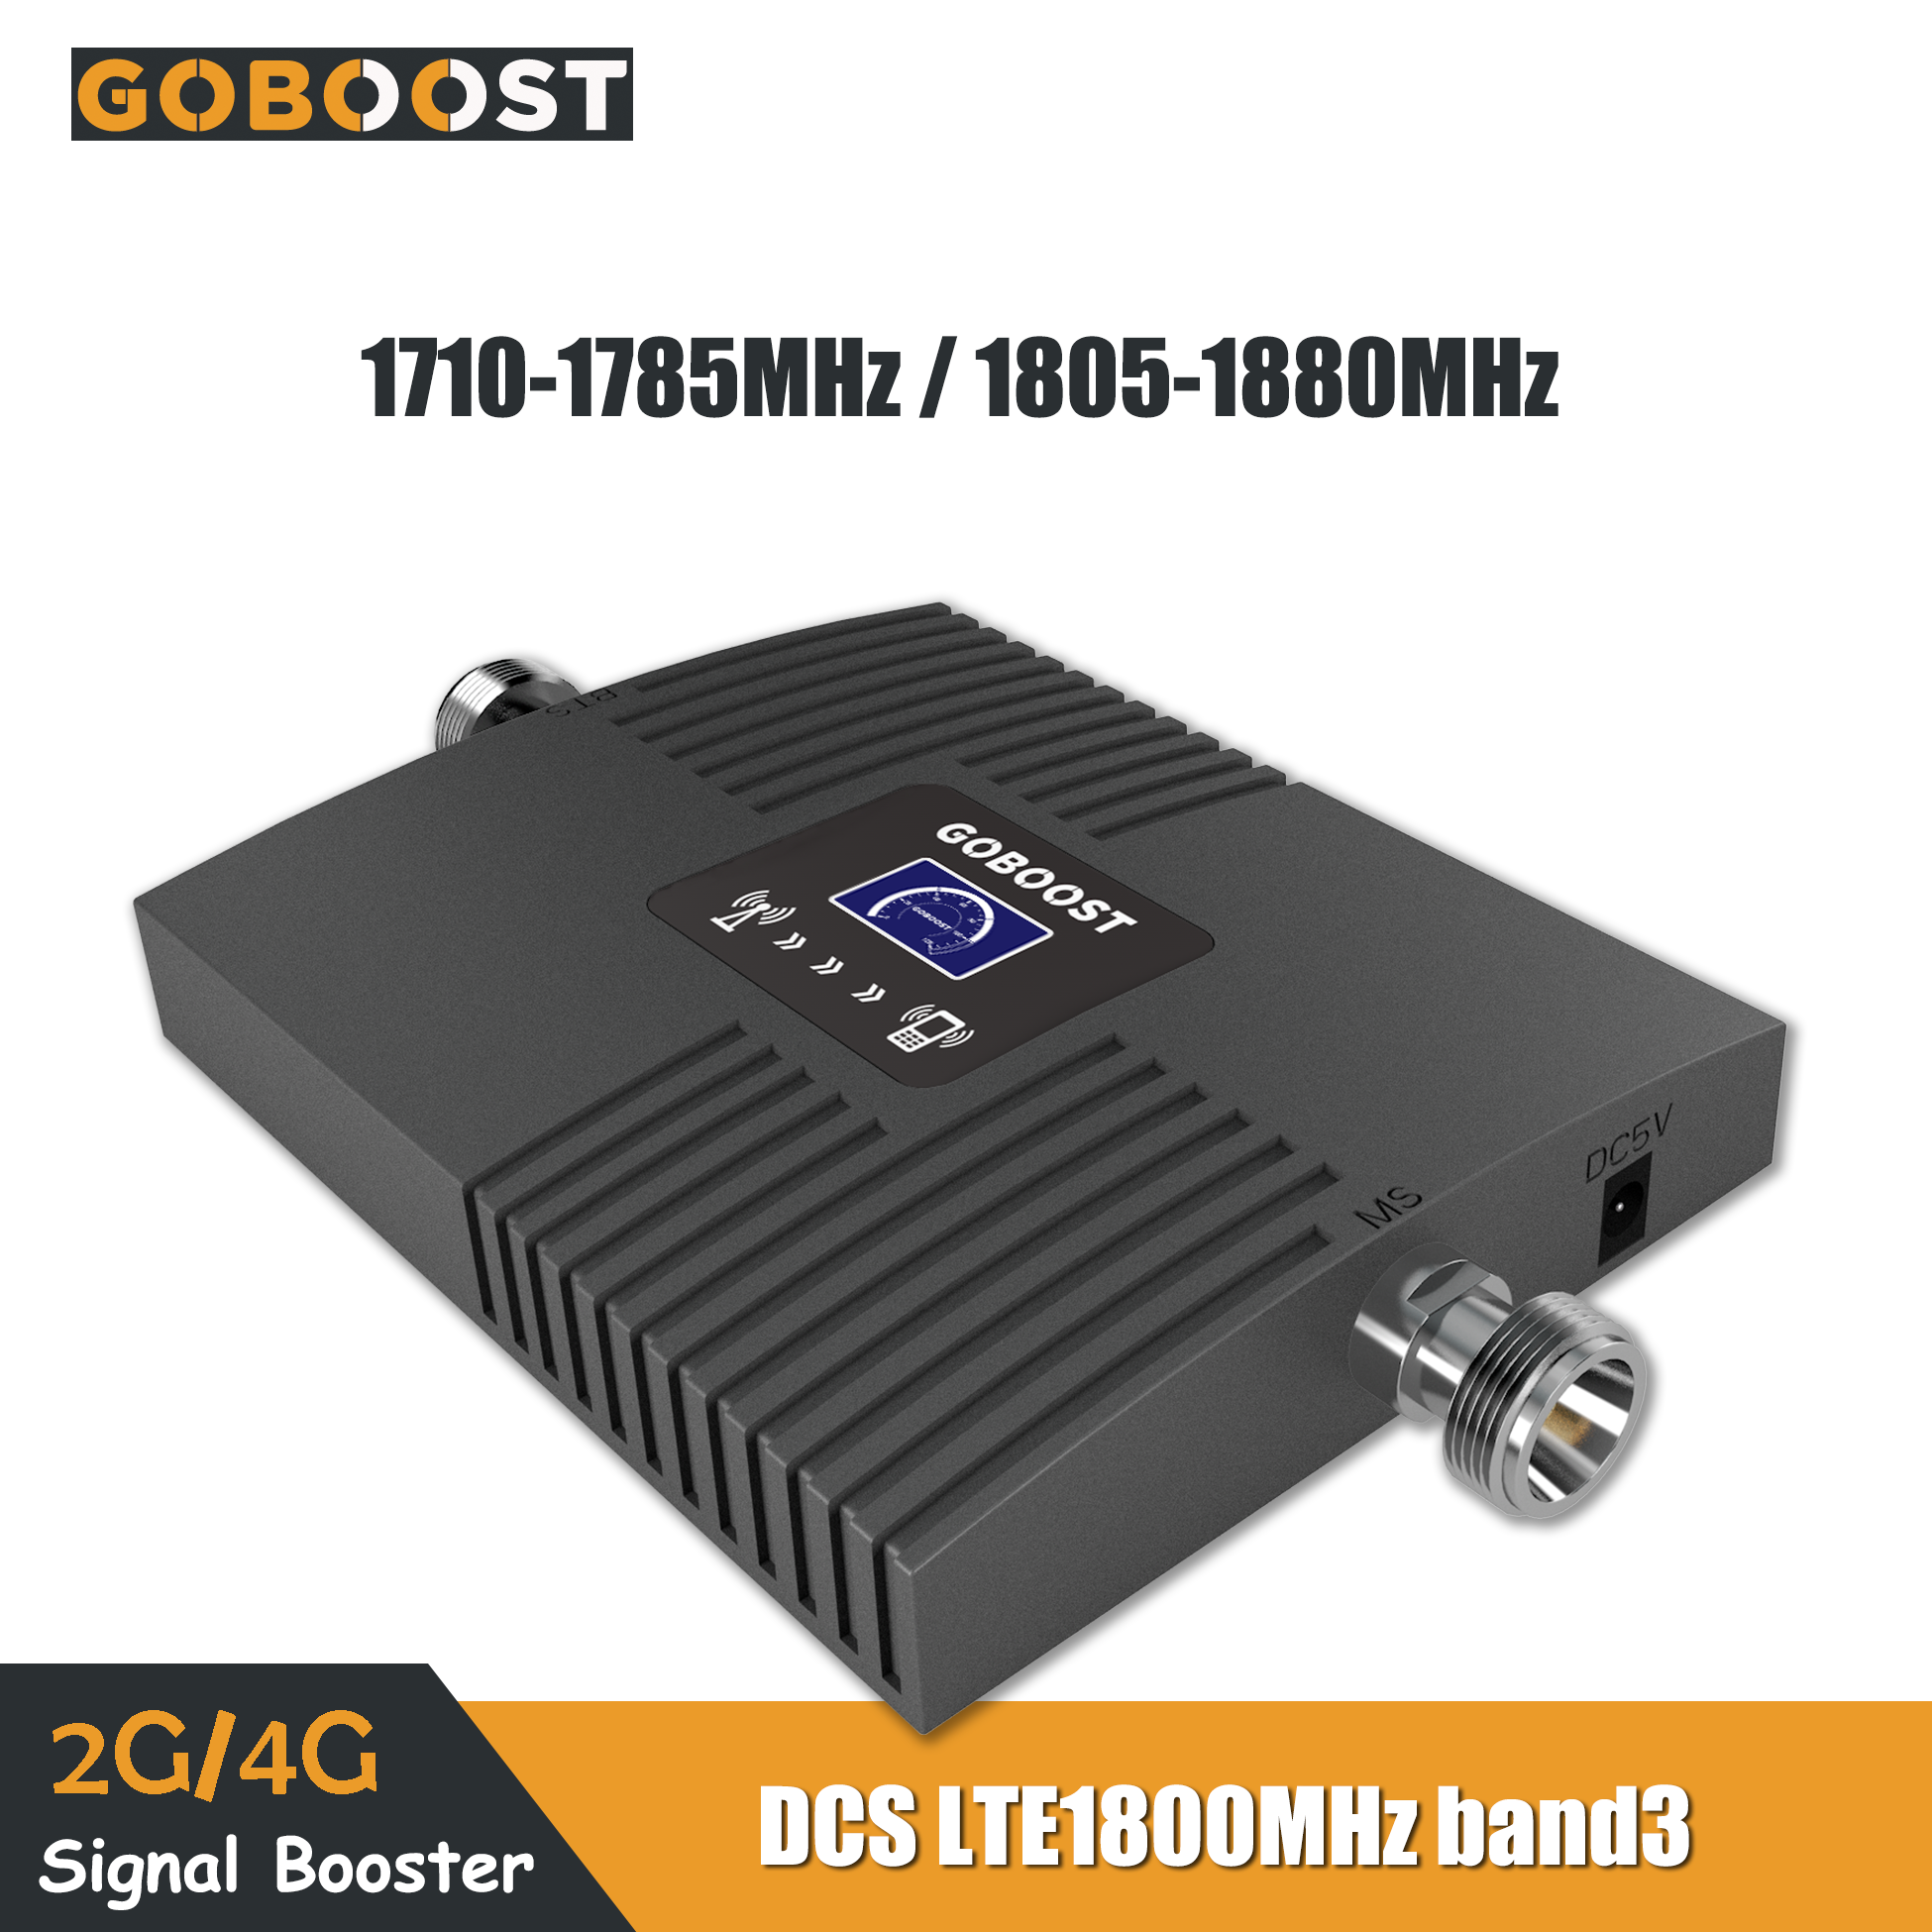 GOBOOST GSM Repeater 1800 4G LTE Cellular Signal Booster LCD Display Band3 DCS Mini Mobile Amplifier Cell Phone Repeater 1800MHz